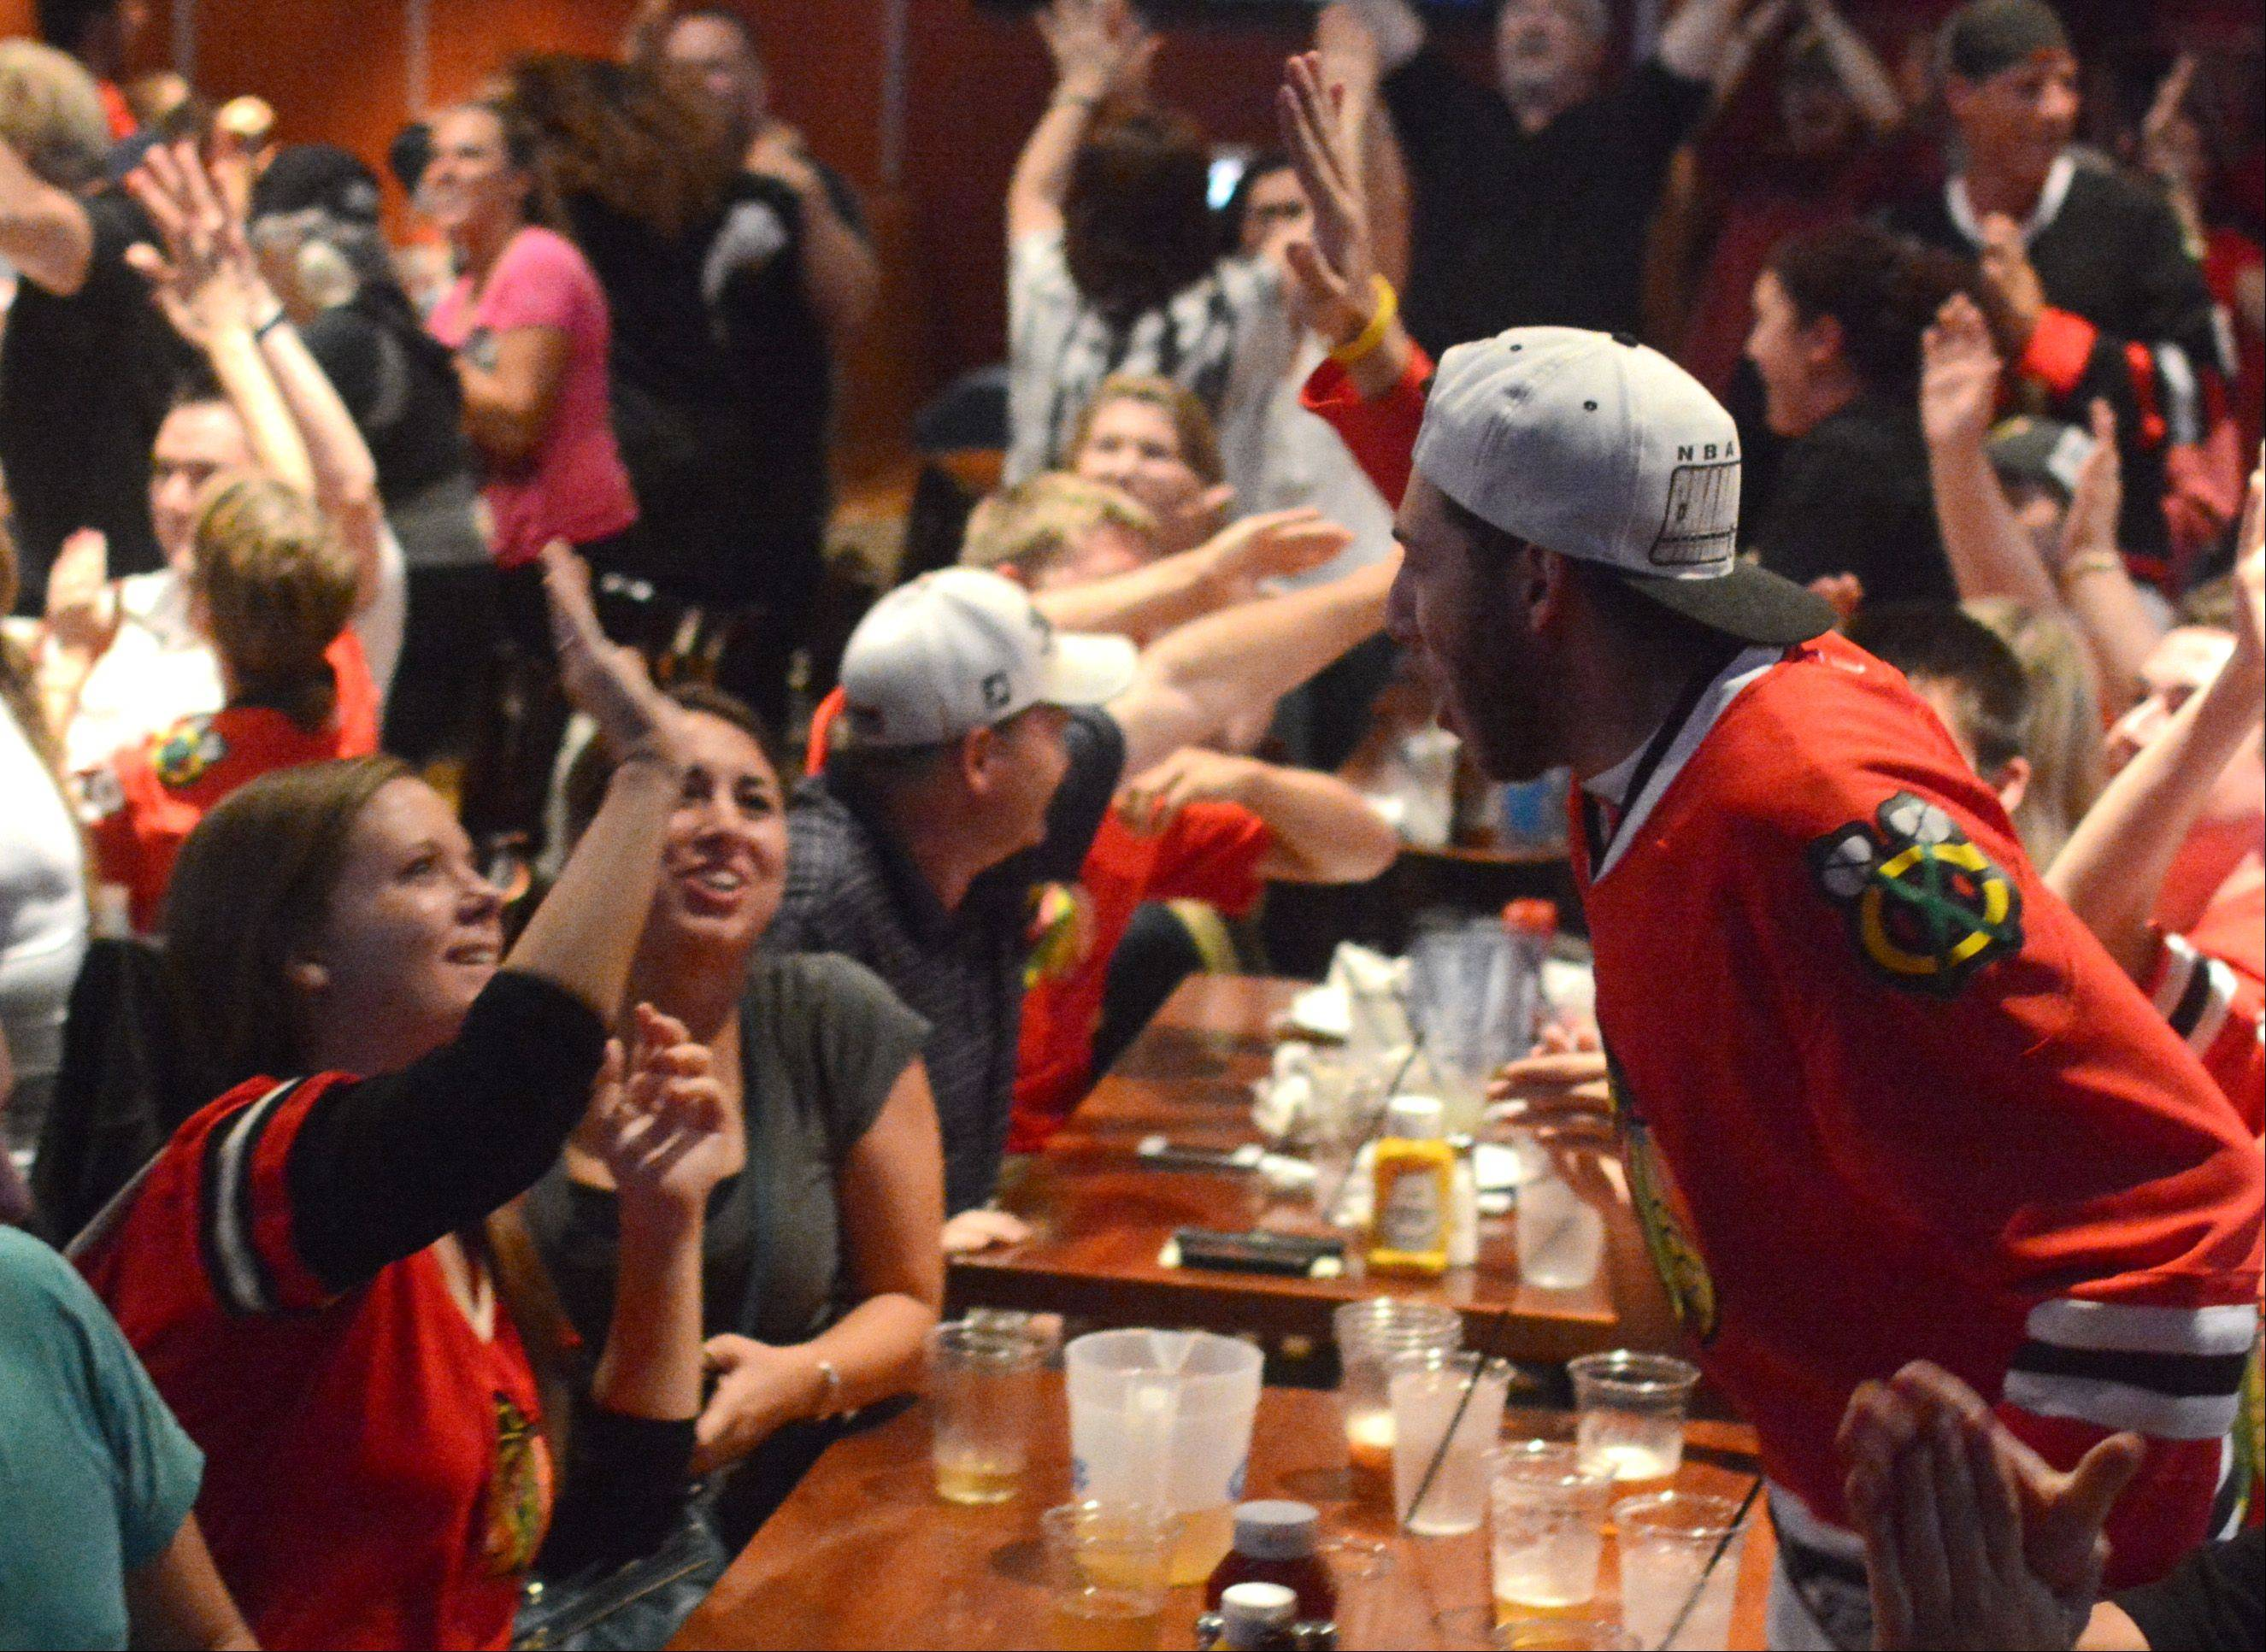 Fans celebrate during a 2013 Blackhawks game at the Cubby Bear North in Lincolnshire. There are reports that the bar closed recently.